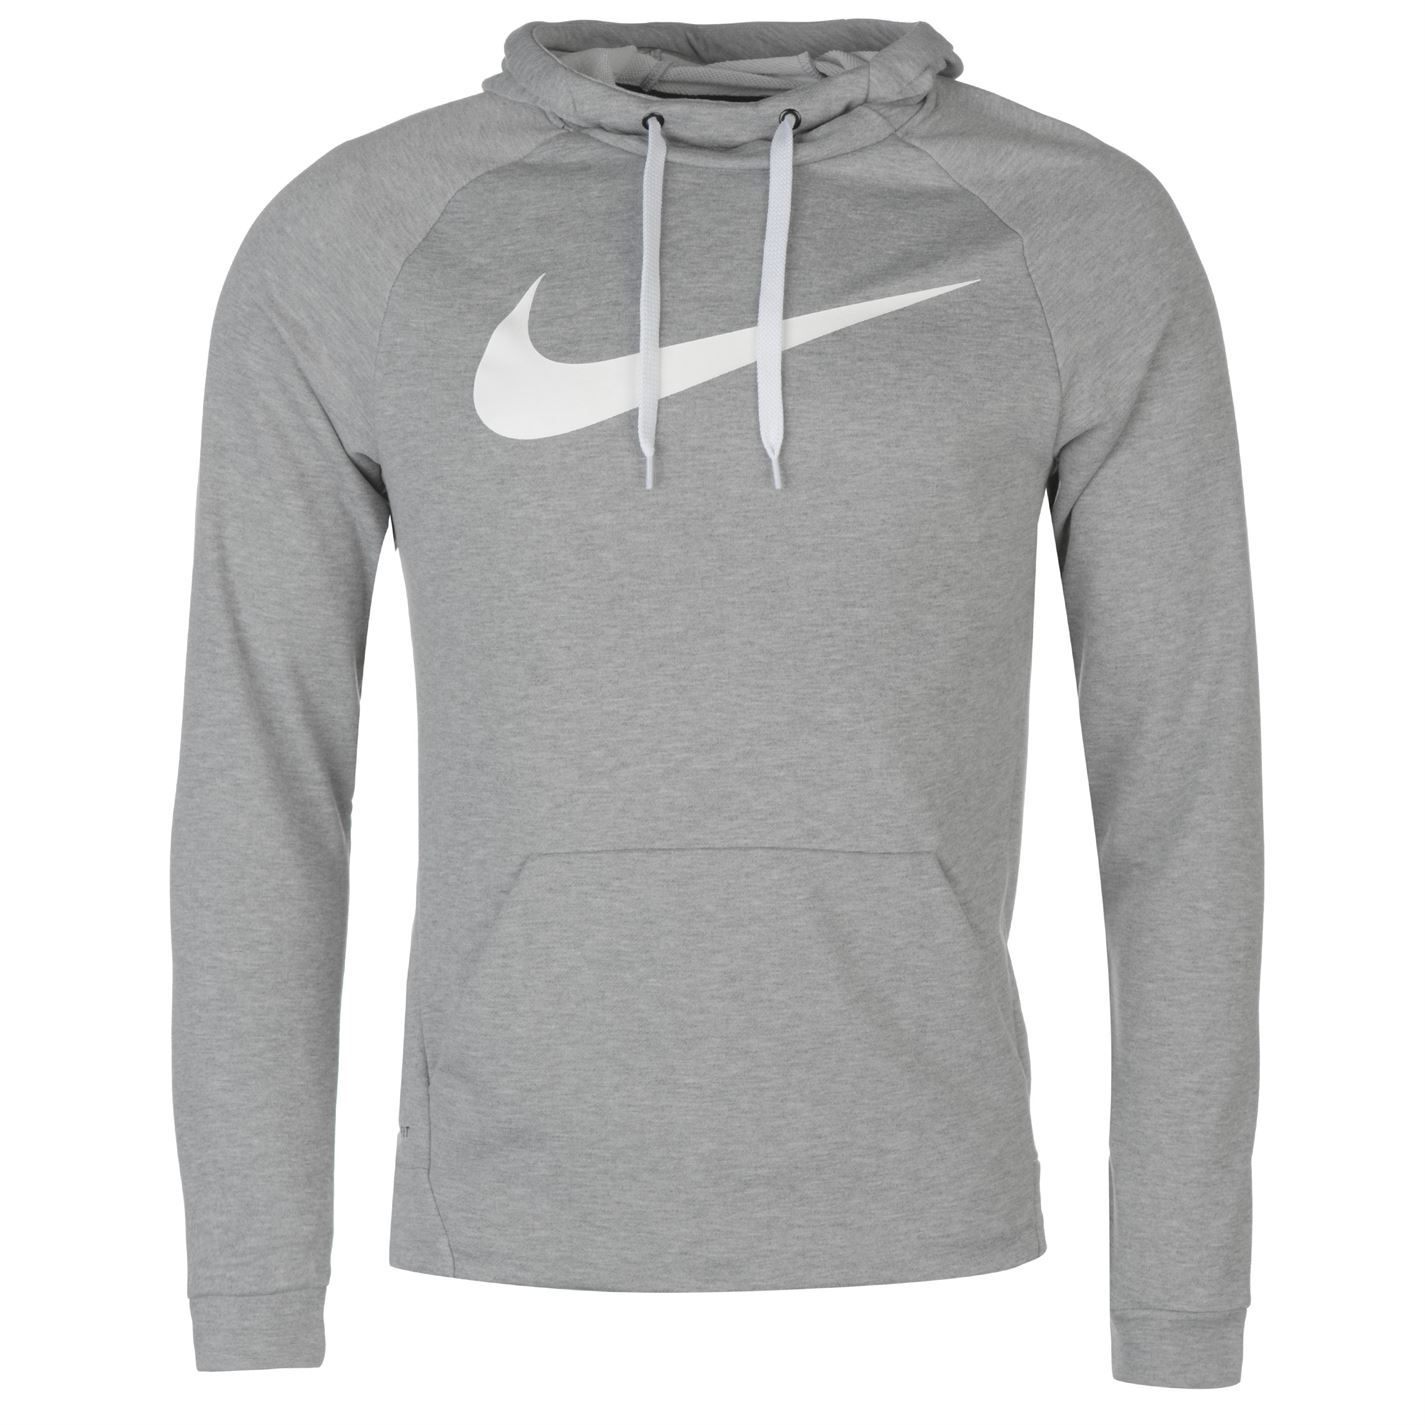 Nike-Dri-Fit-Swoosh-Pullover-Hoody-Mens-OTH-Hoodie-Sweatshirt-Sweater-Hooded-Top thumbnail 13